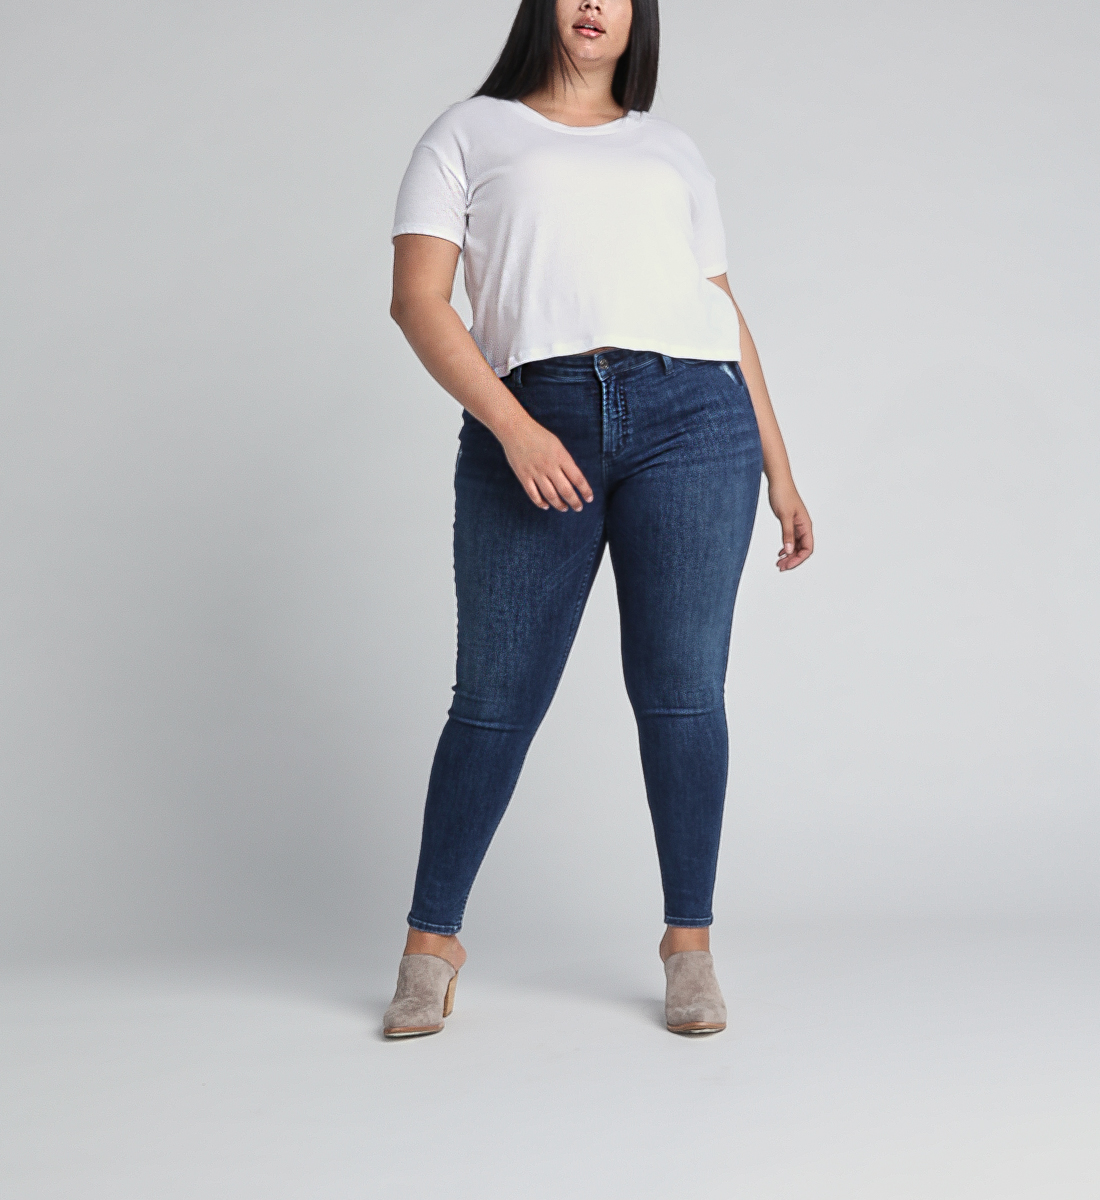 Most Wanted Mid Rise Skinny Leg Jeans Plus Size,Indigo Front